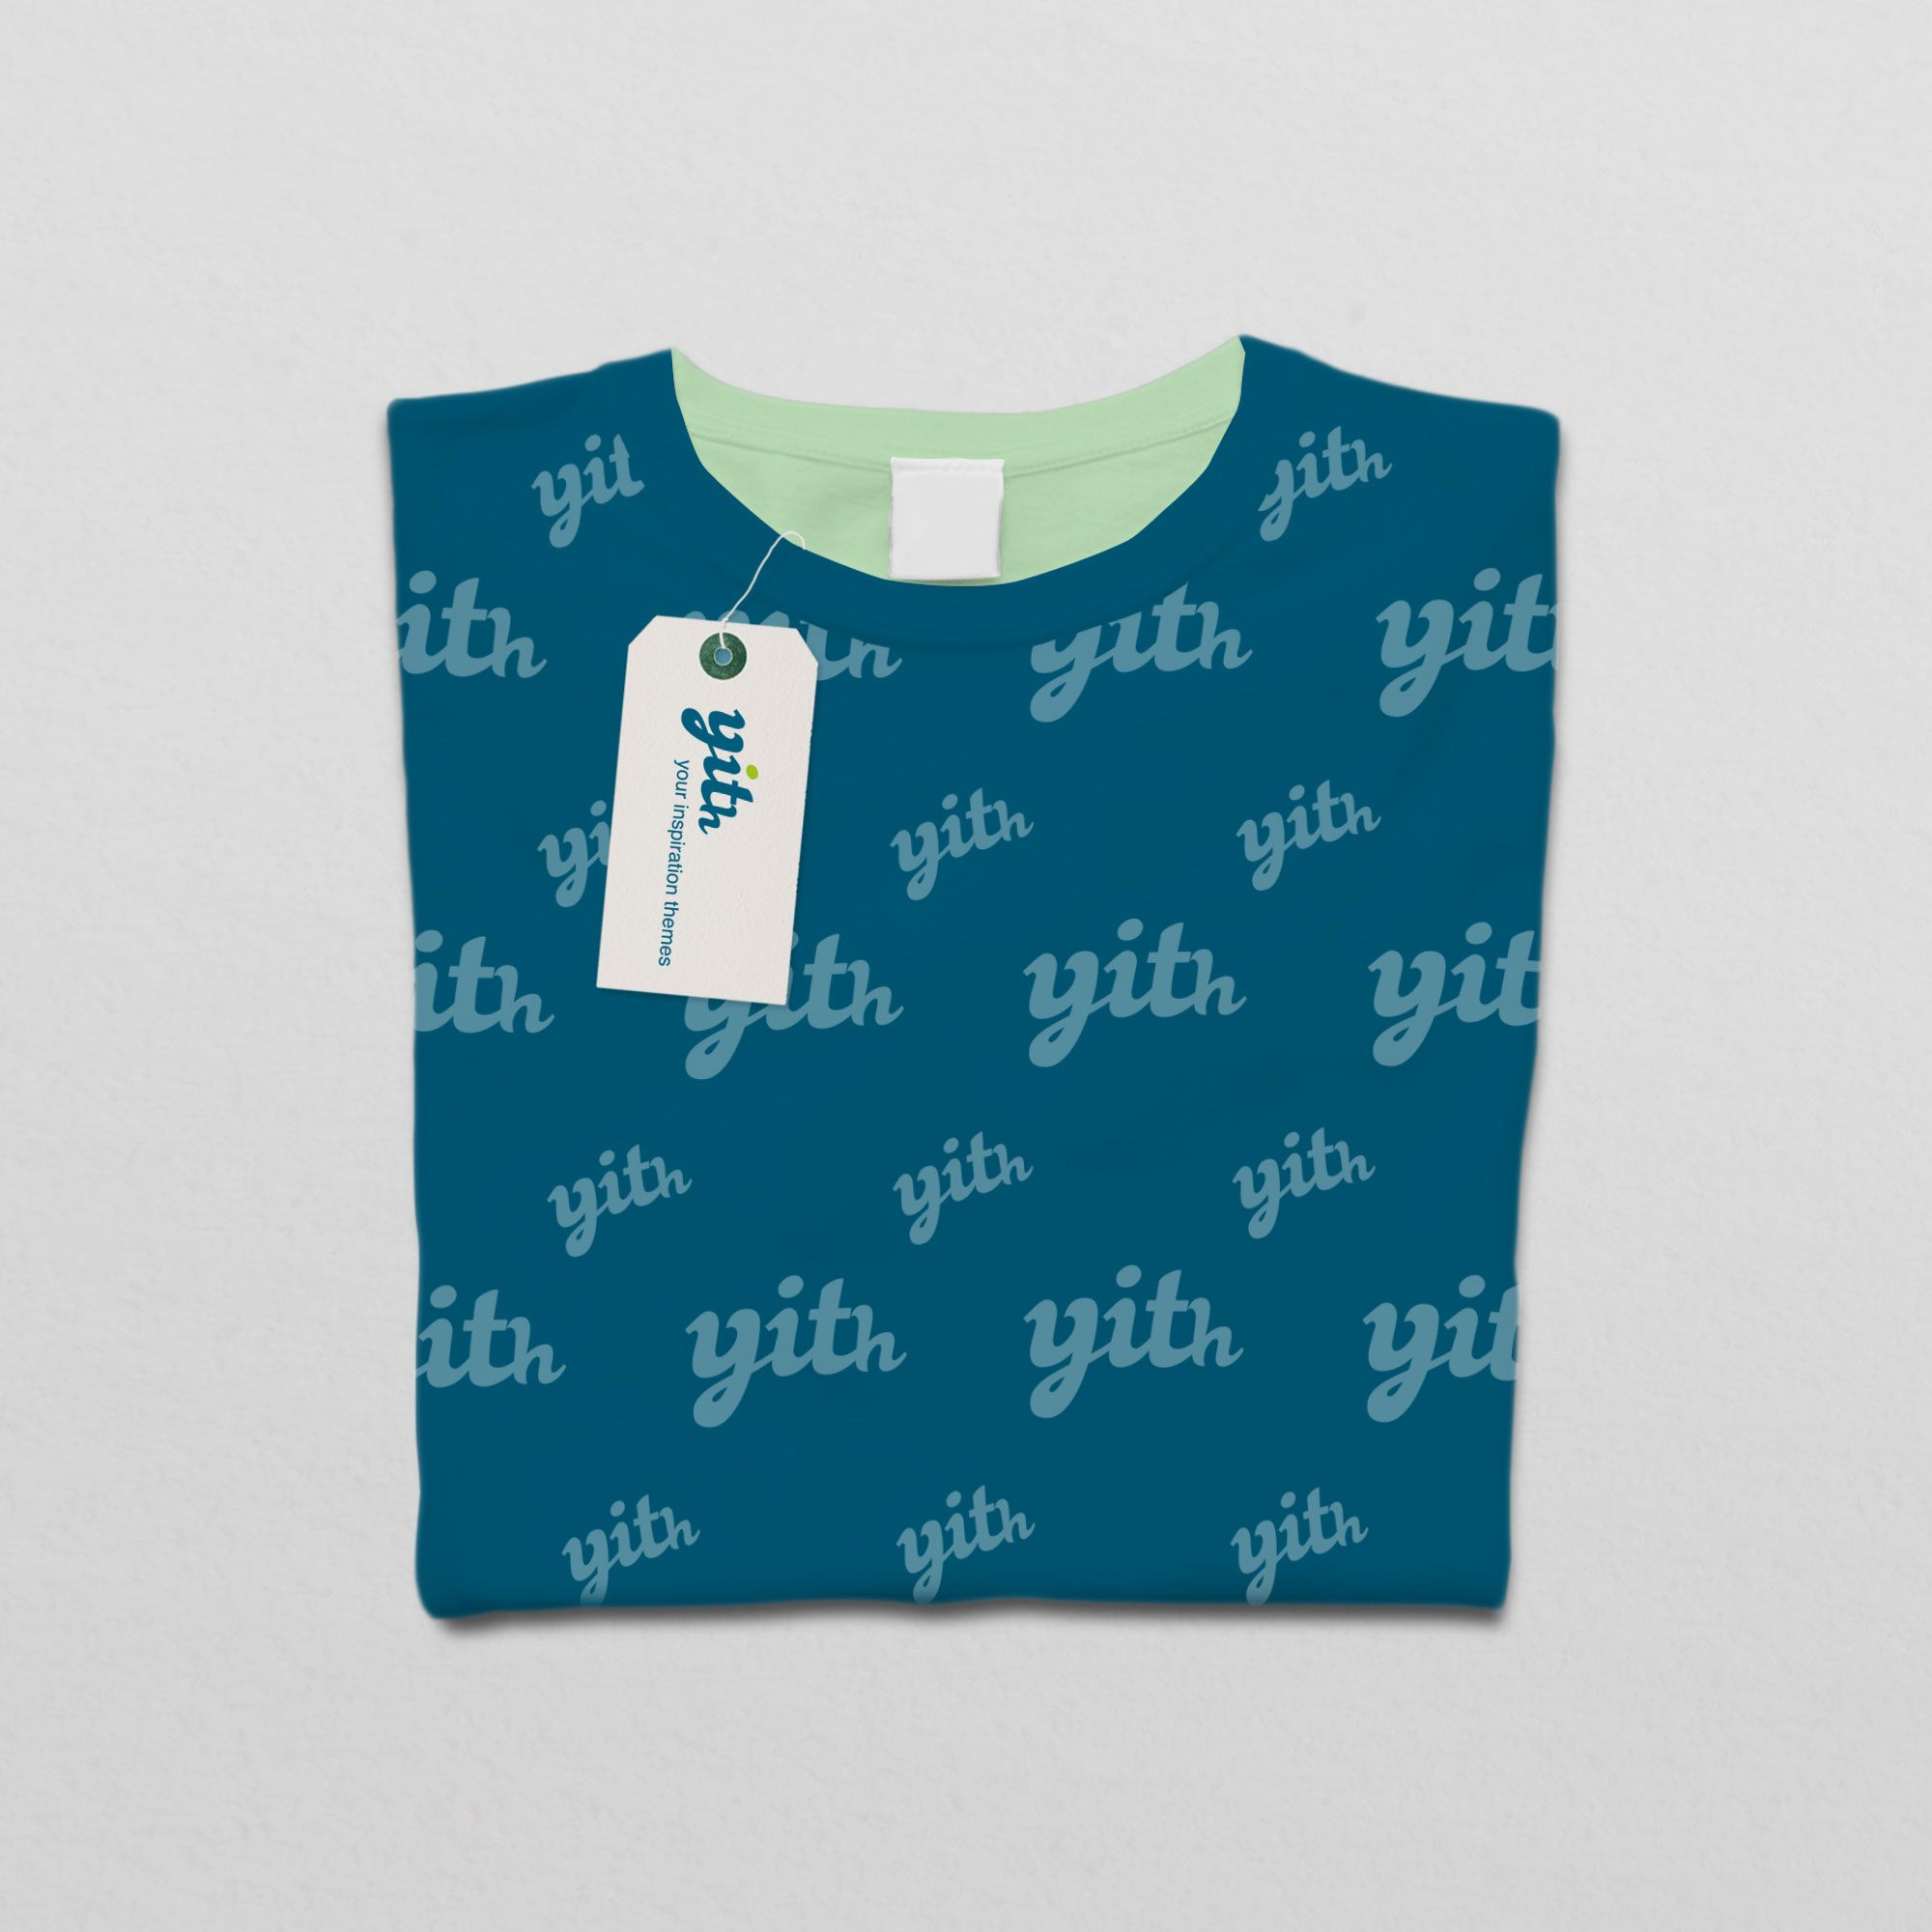 YITH Jersey - Blue